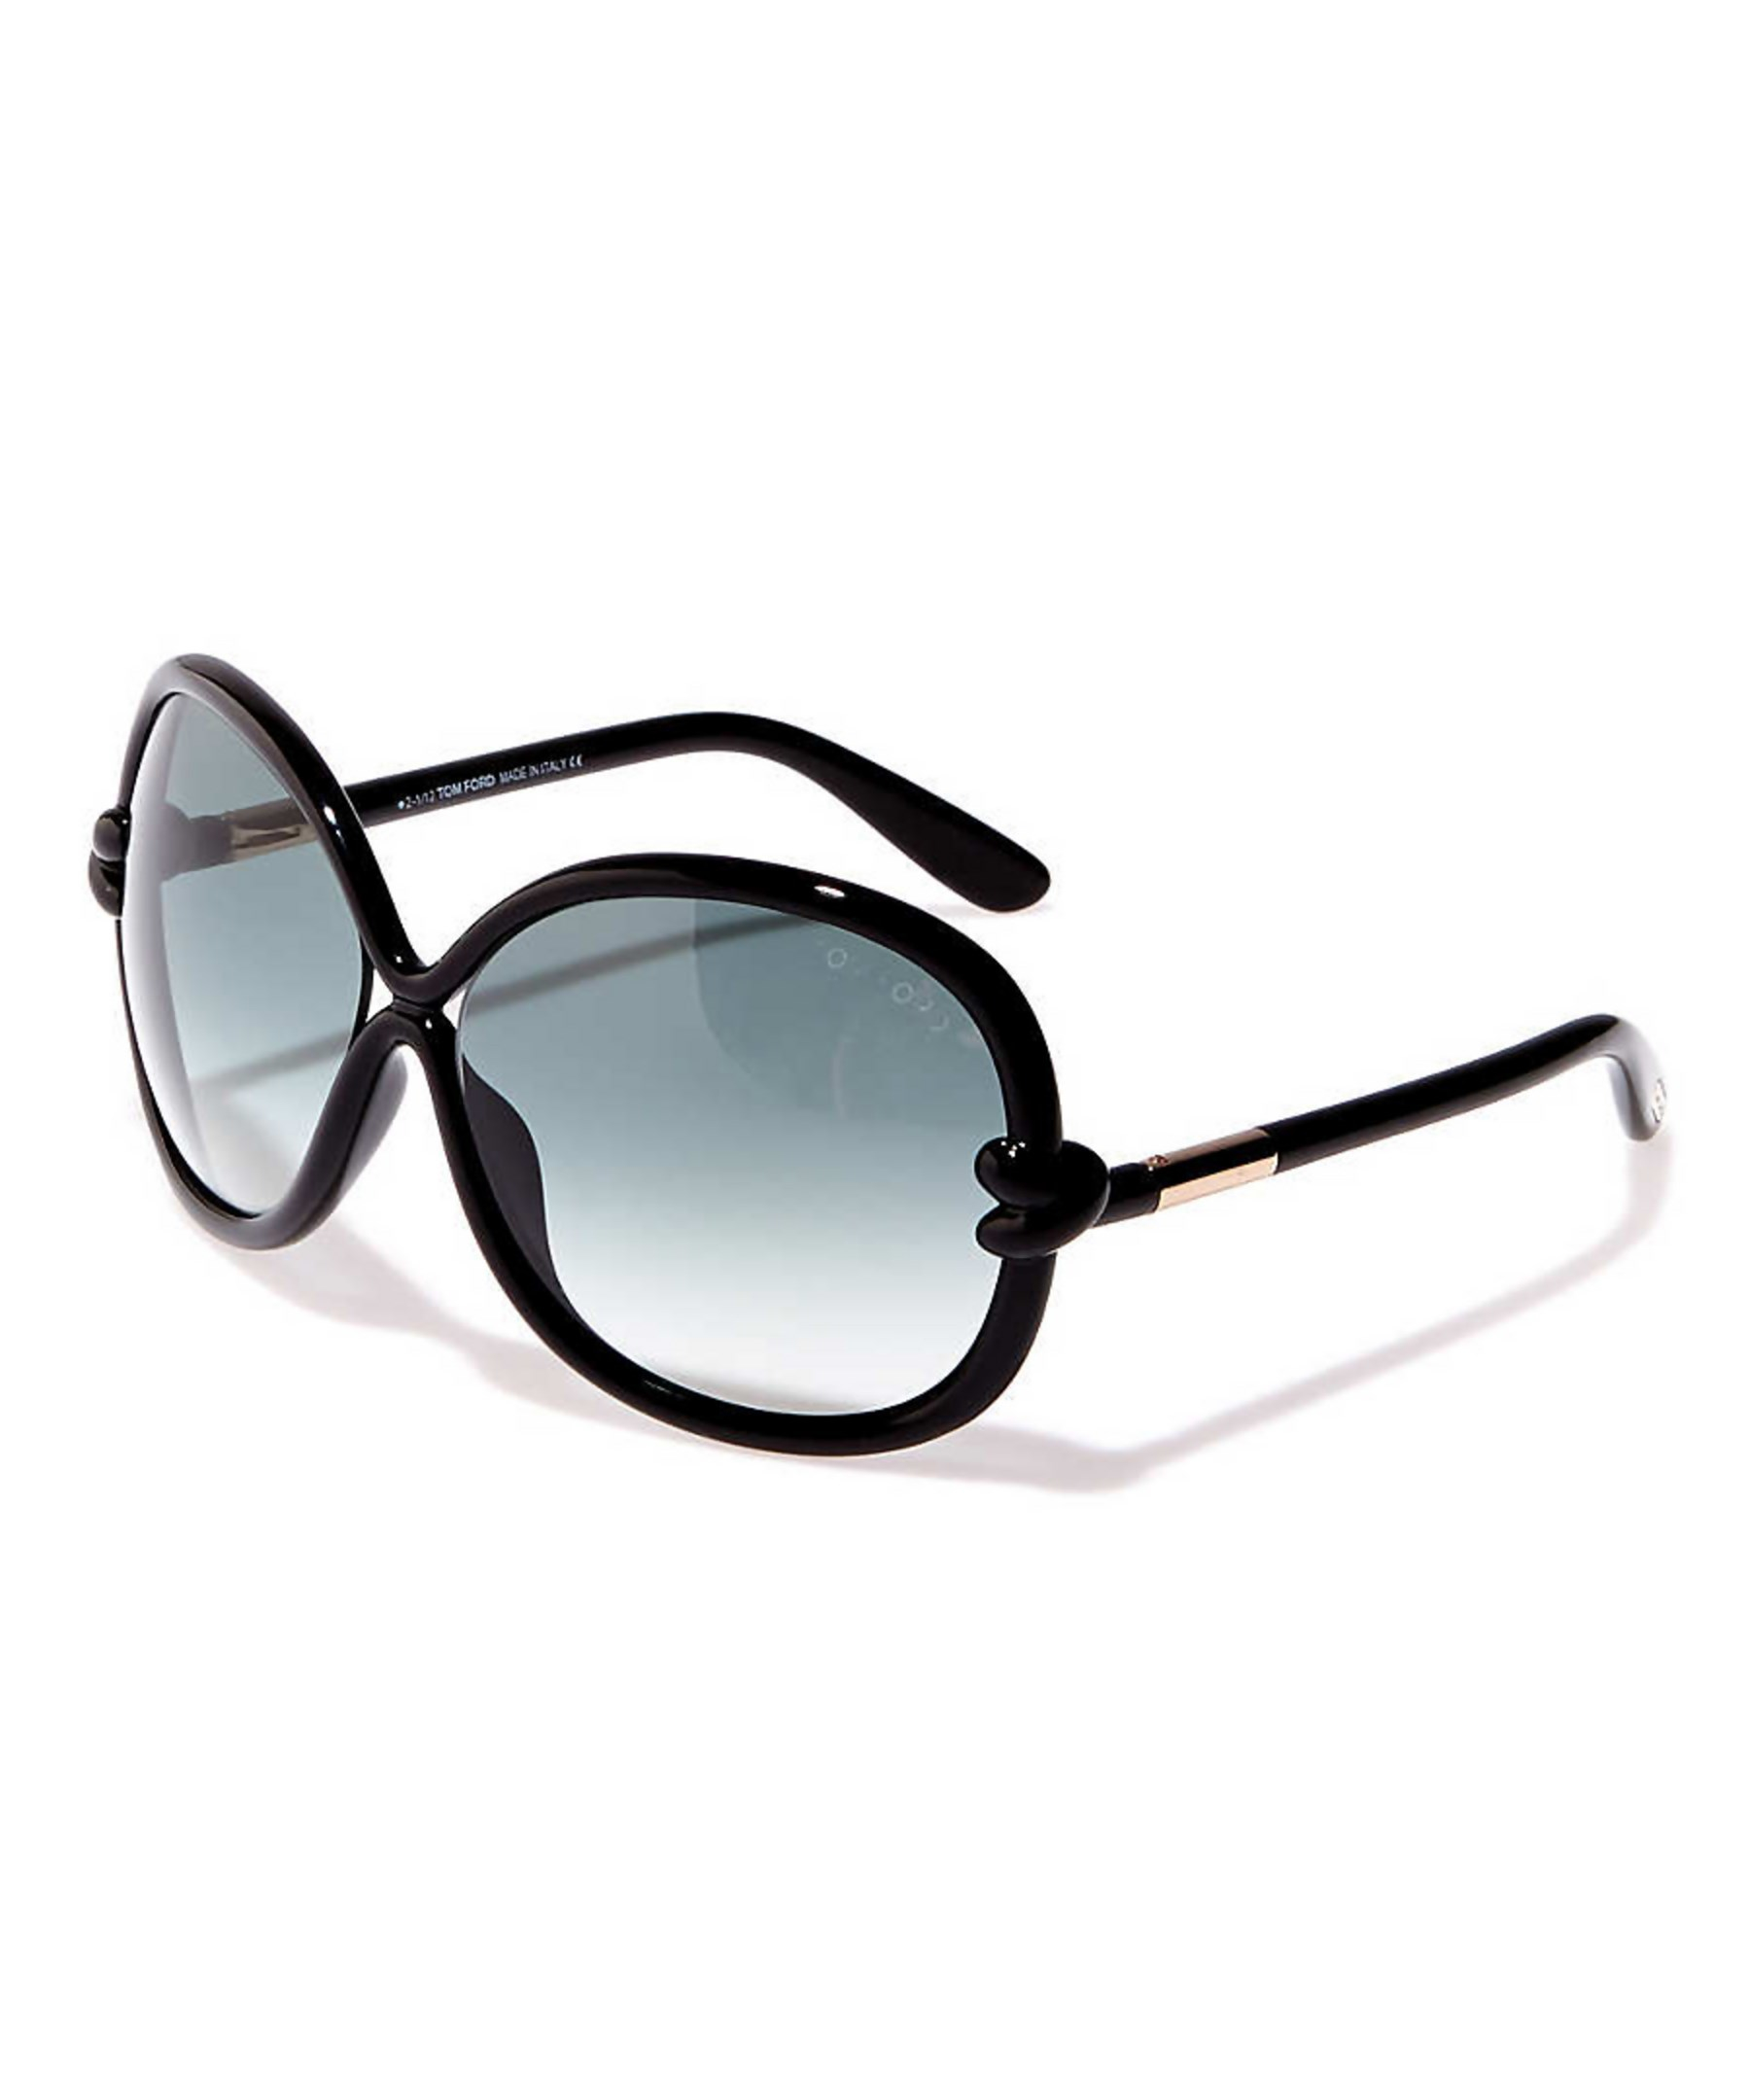 tom ford women 39 s sonja sunglasses in black lyst. Cars Review. Best American Auto & Cars Review